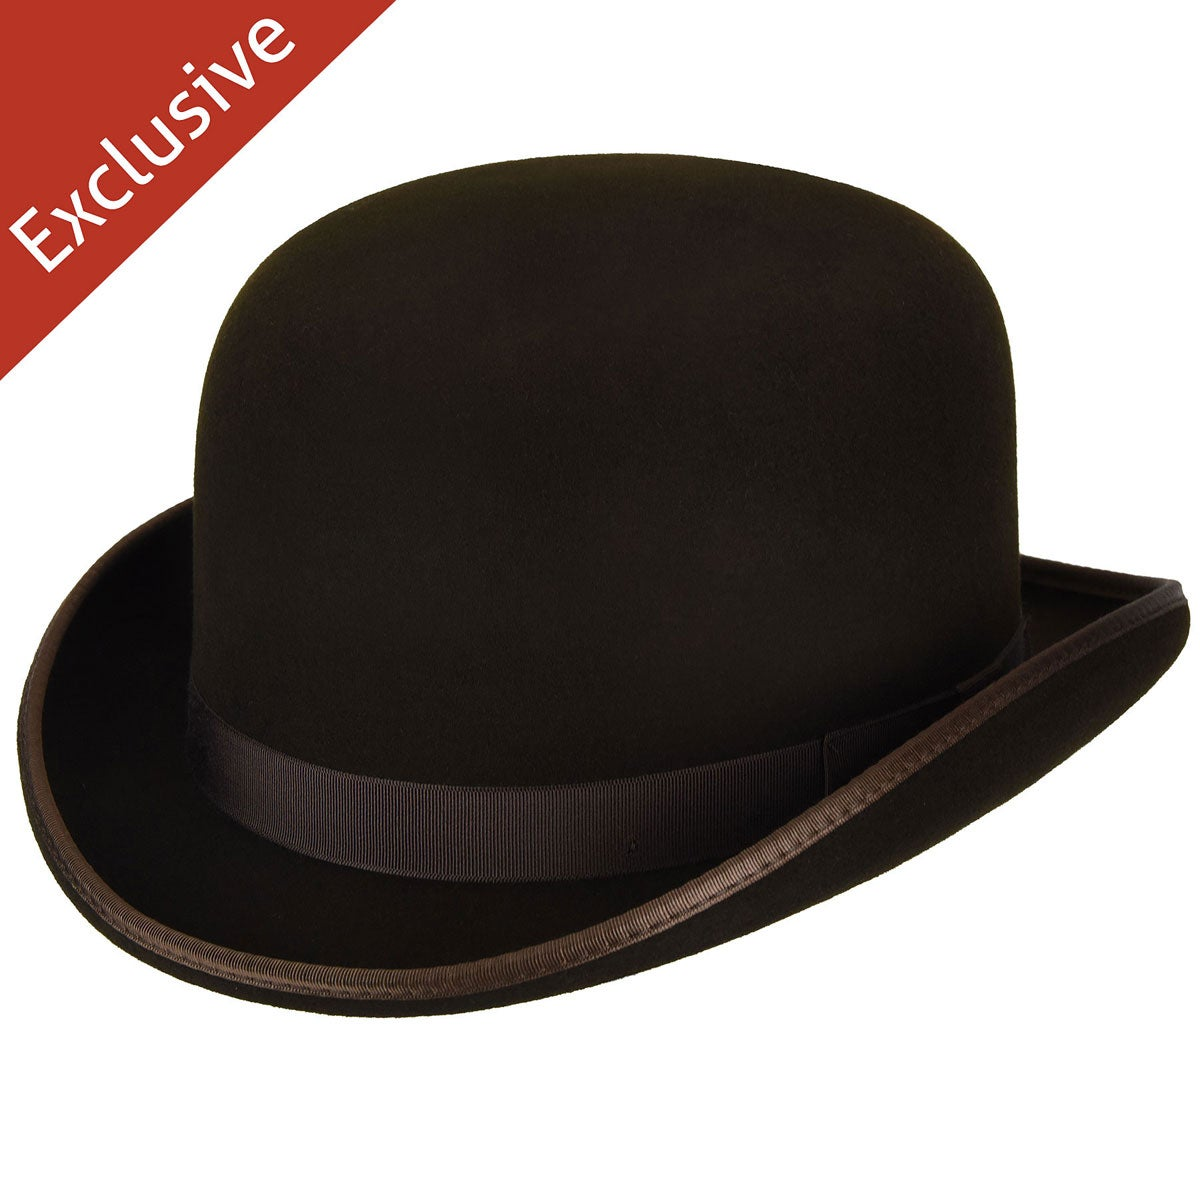 Peaky Blinders & Boardwalk Empire: Men's 1920s Gangster Clothing Steed Derby Hat - Exclusive $39.99 AT vintagedancer.com